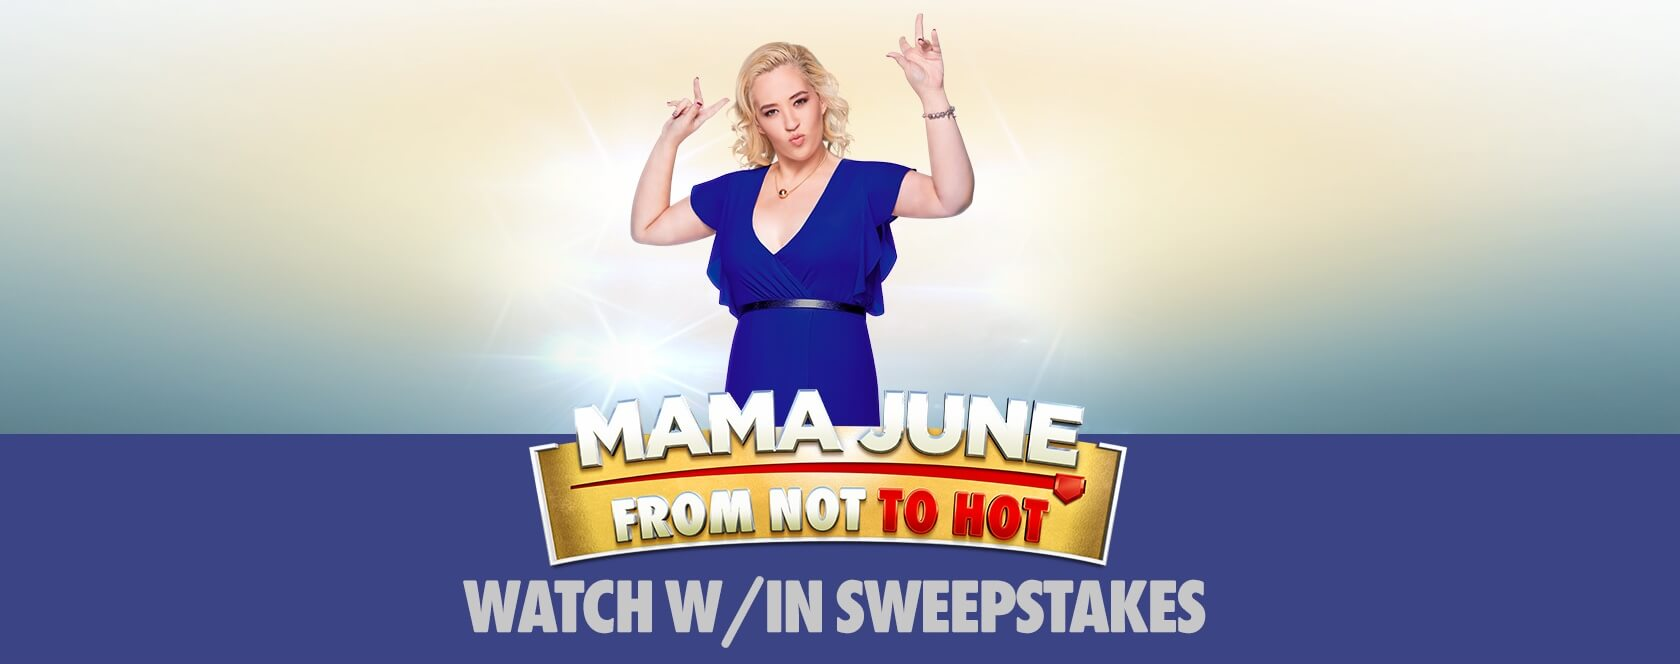 Code Words For The WETV Mama June Sweepstakes